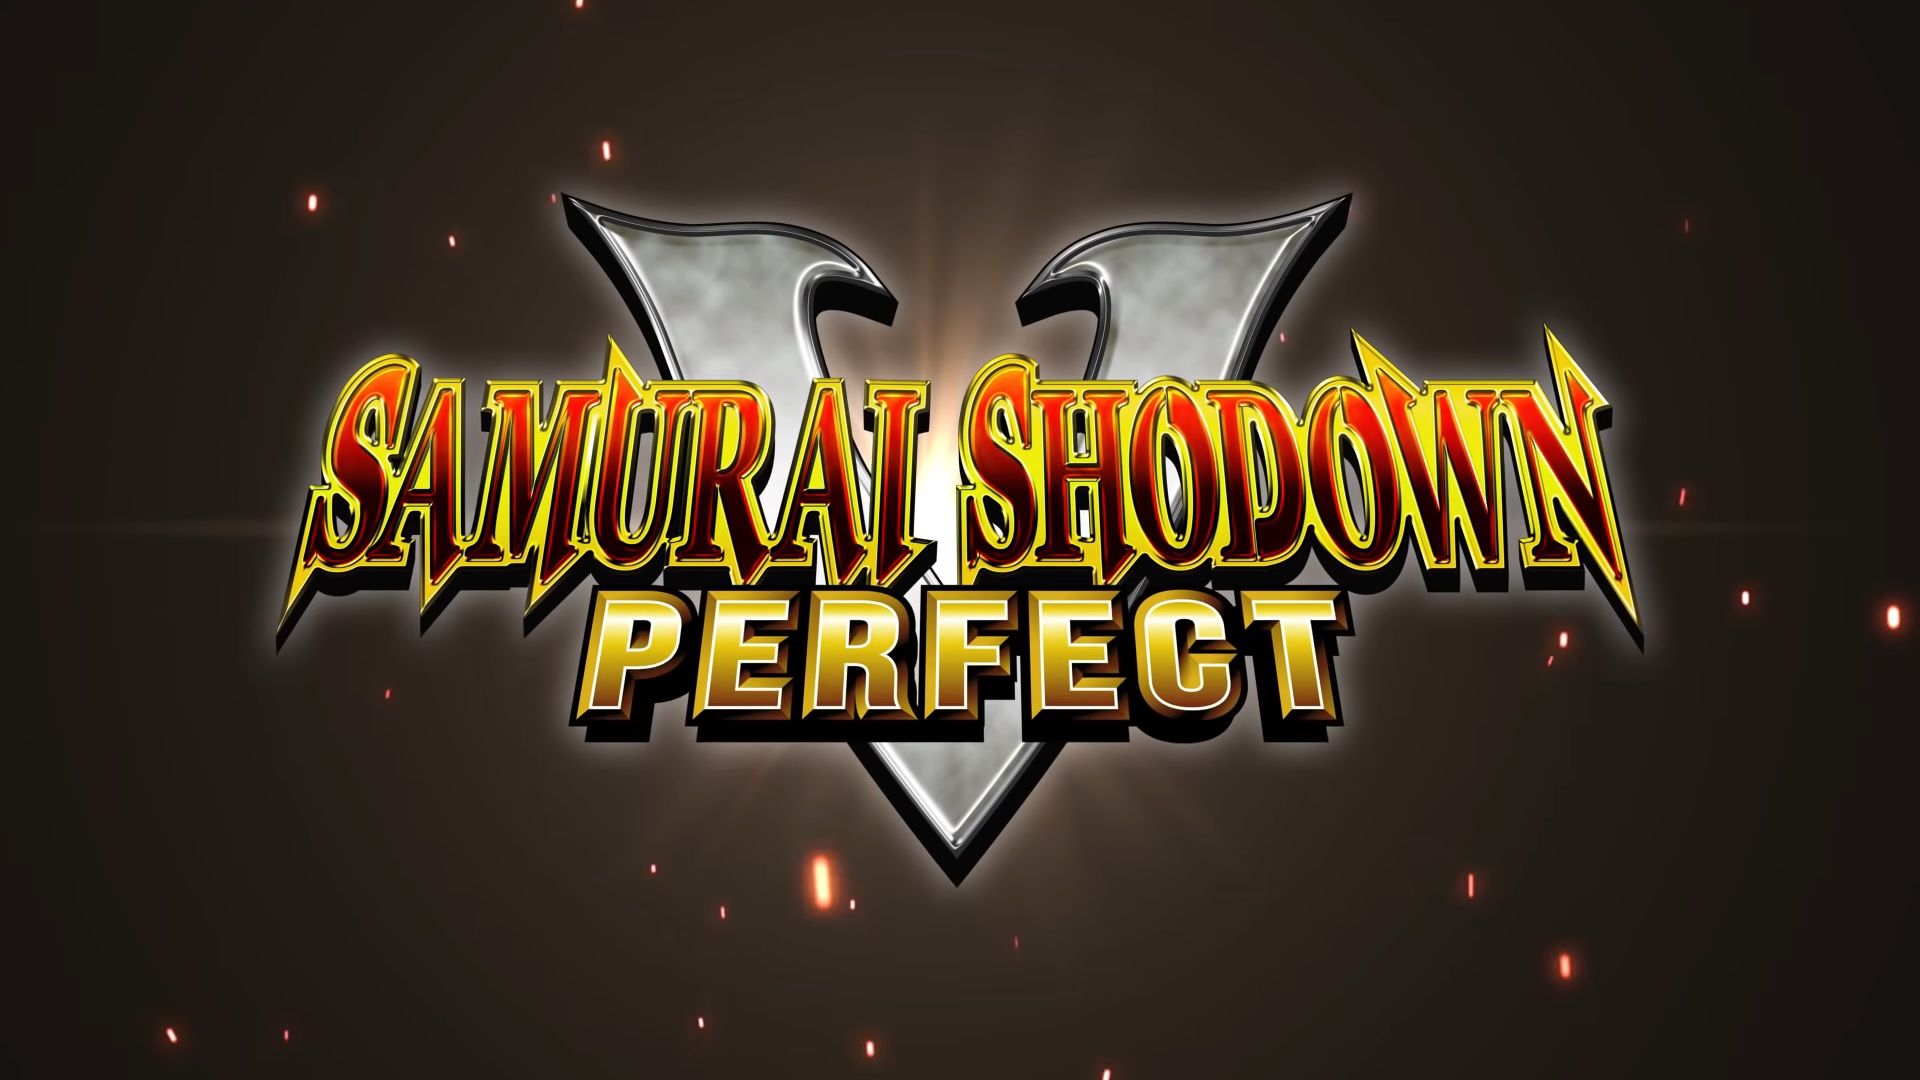 Photo of Lost Samurai Shodown Game to Be Included in Upcoming Collection